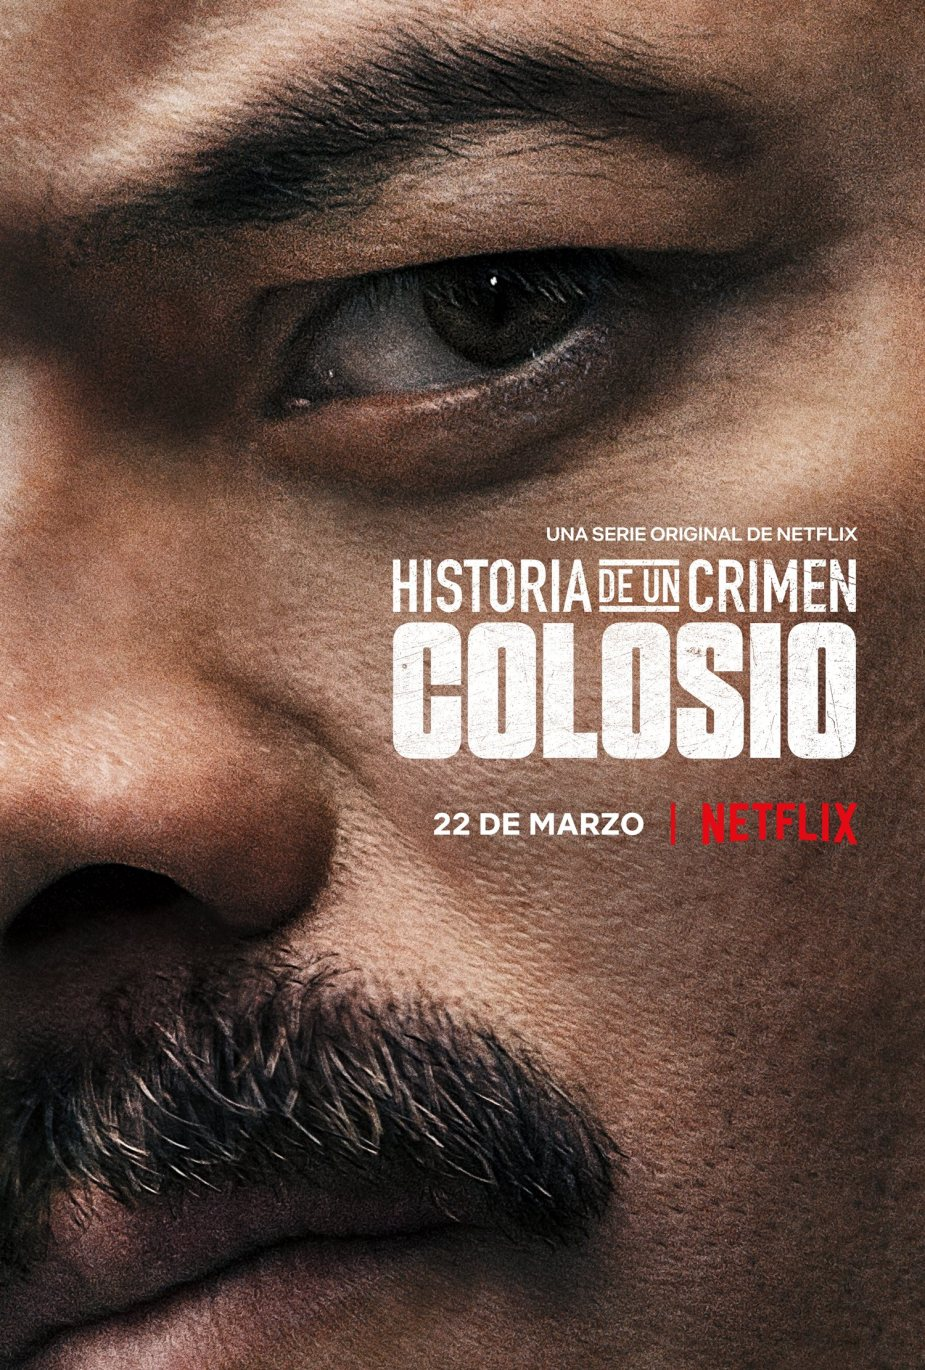 colosio_vertical_rgb_2.jpg